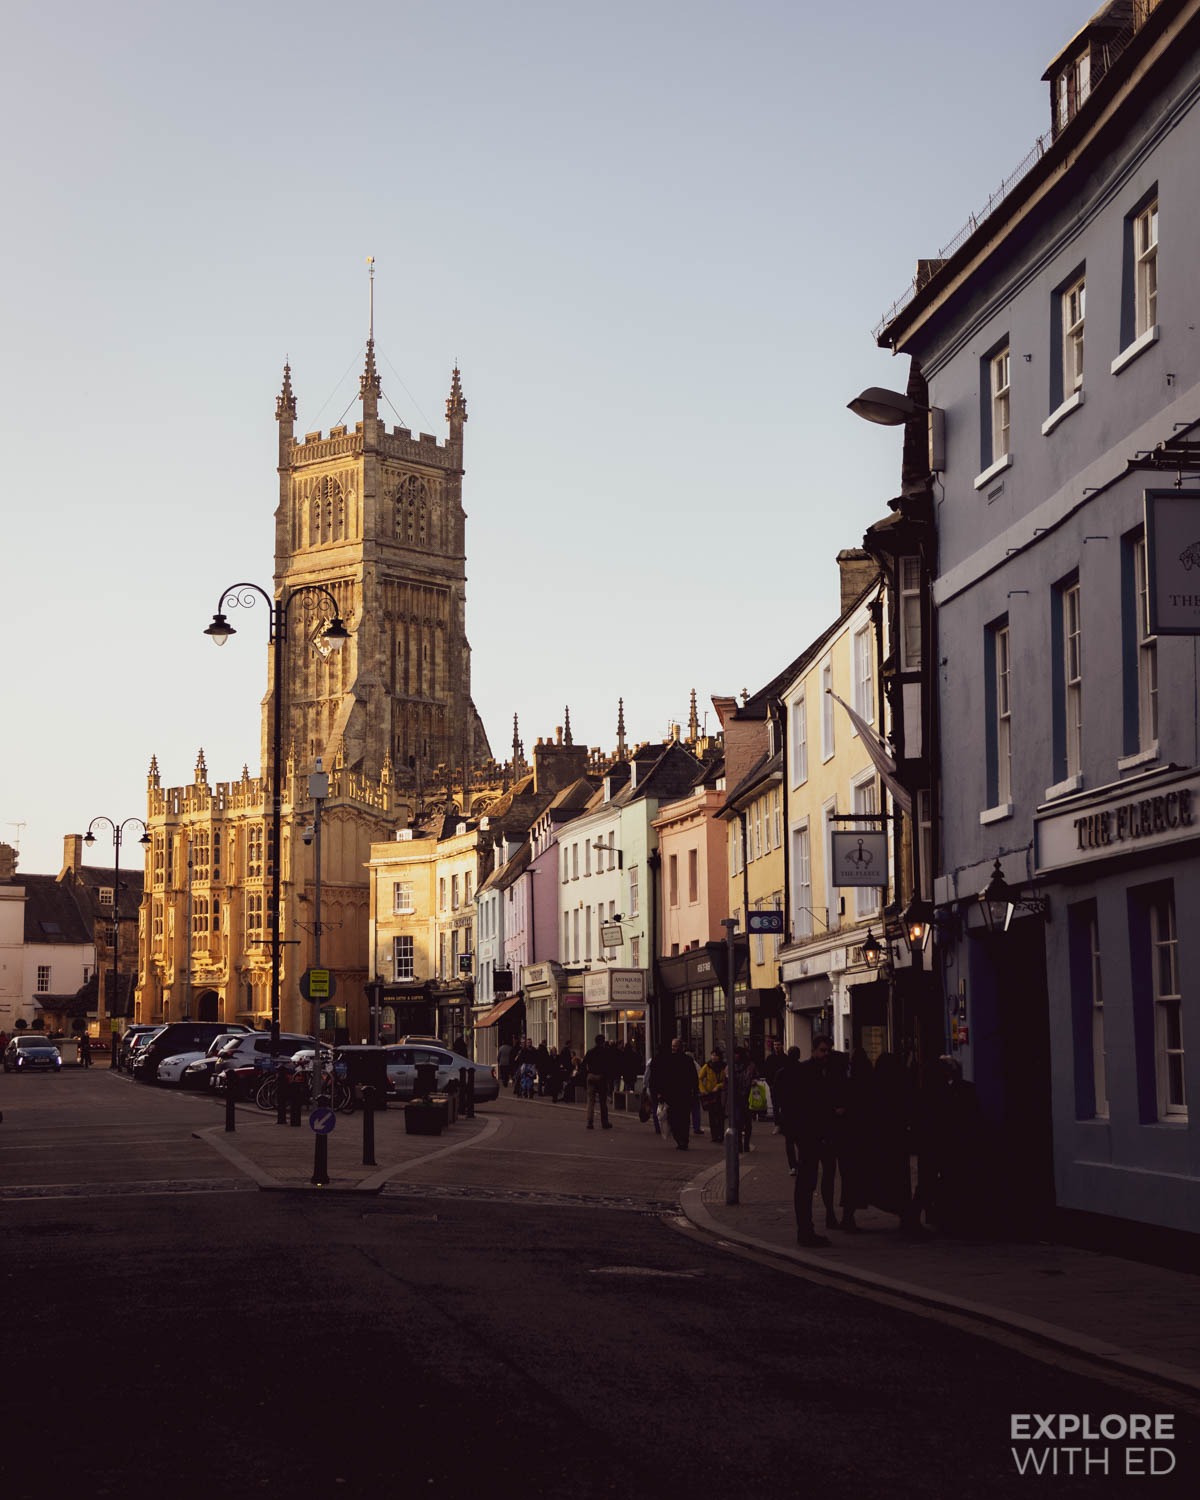 Town centre of Cirencester